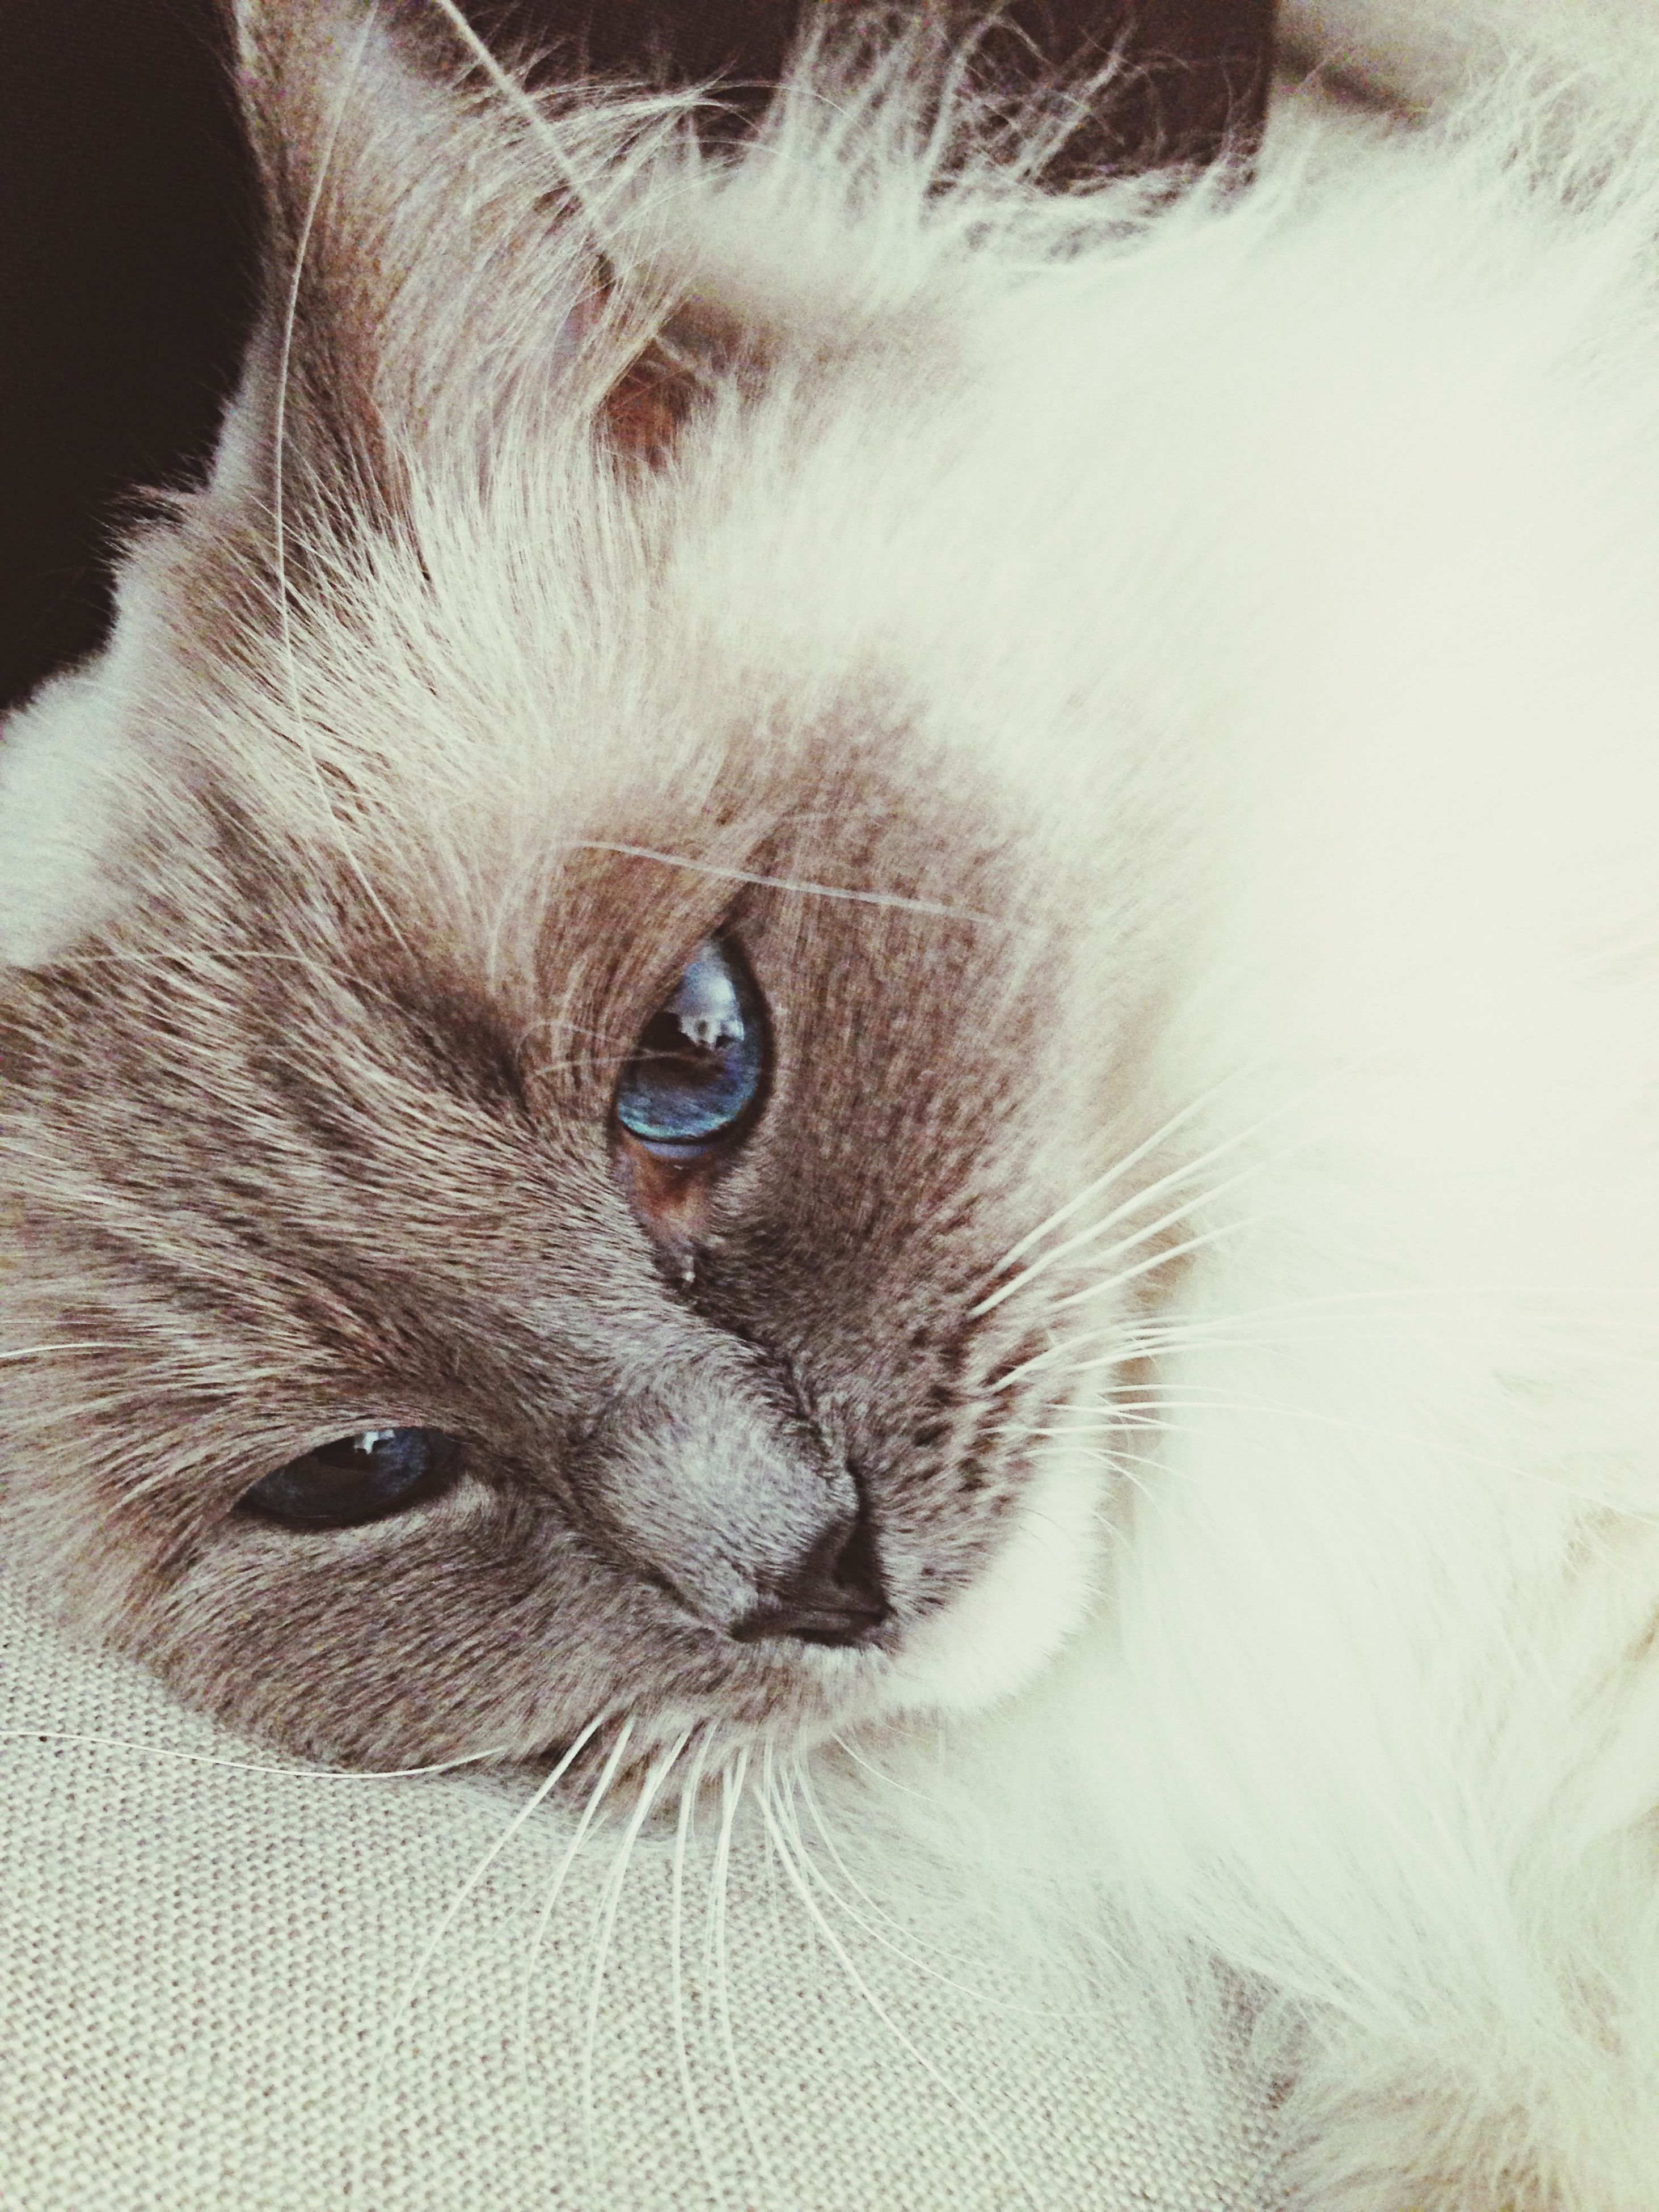 domestic animals, pets, one animal, animal themes, domestic cat, mammal, cat, close-up, whisker, feline, animal head, indoors, animal body part, portrait, animal eye, looking at camera, no people, part of, animal hair, staring